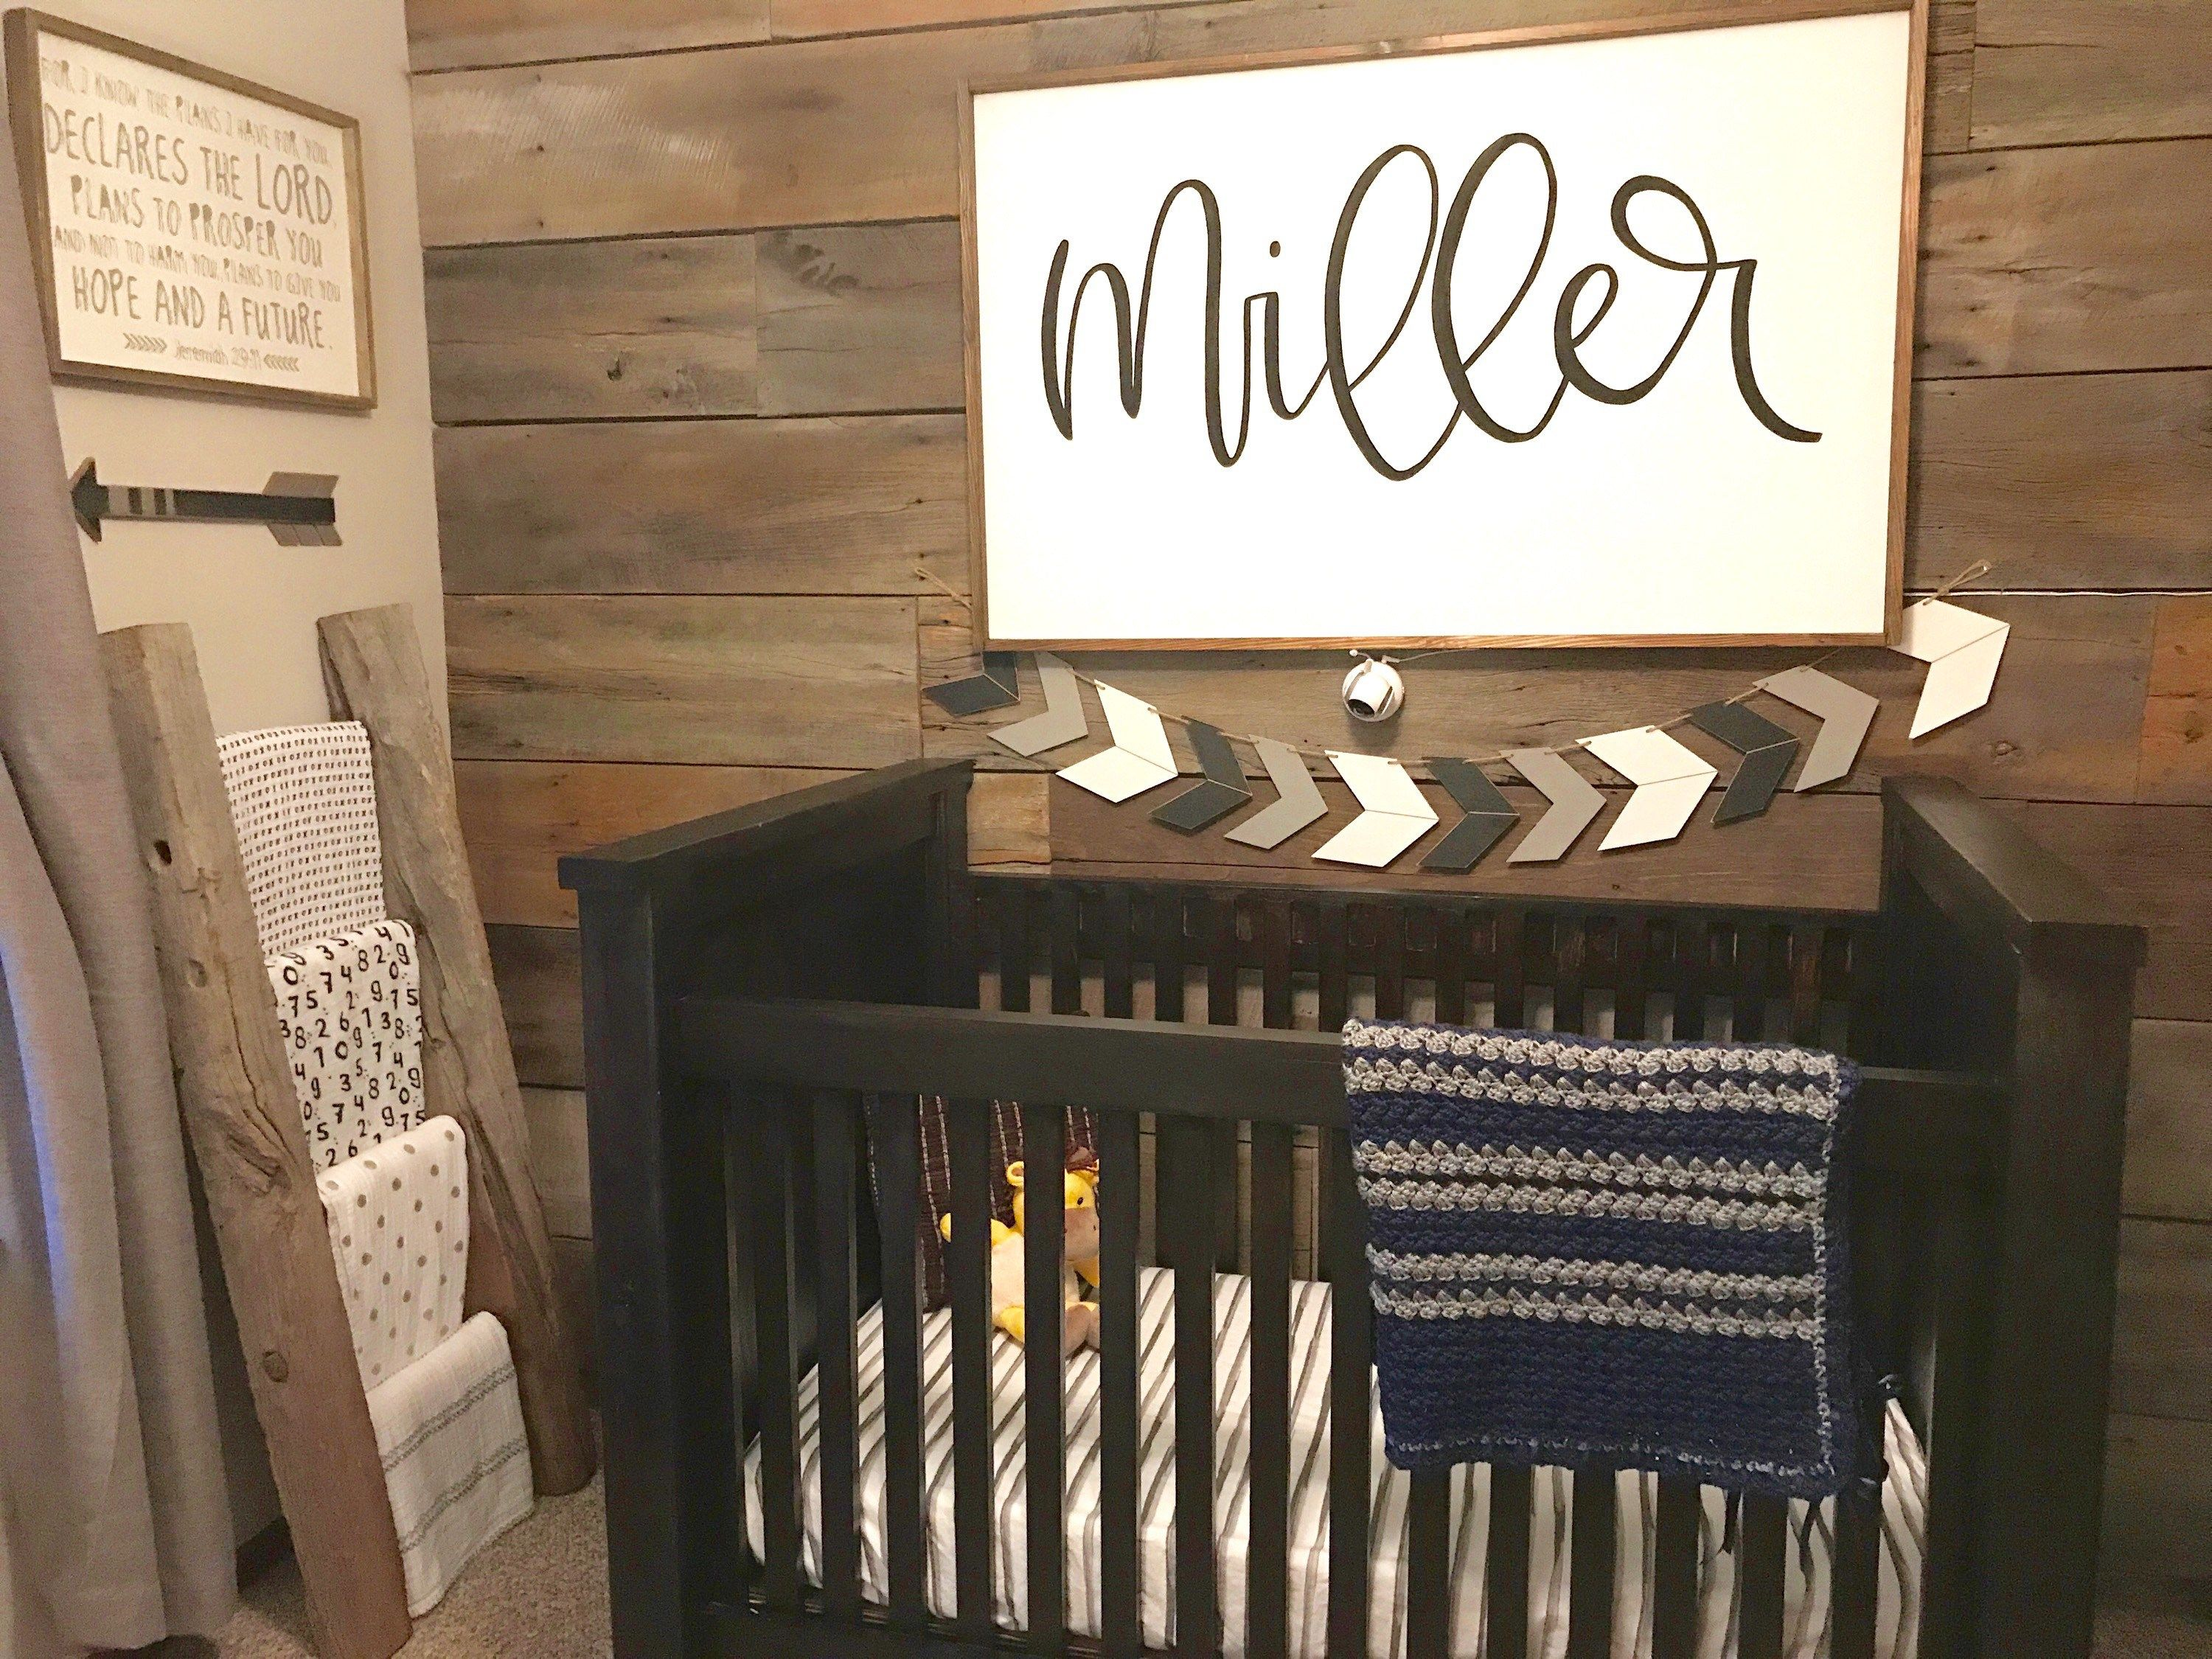 A Peak At Miller S Monochromatic Rustic Farmhouse Nursery As We Roach 37 Weeks Of Pregnancy And Are Waiting On His Arrival